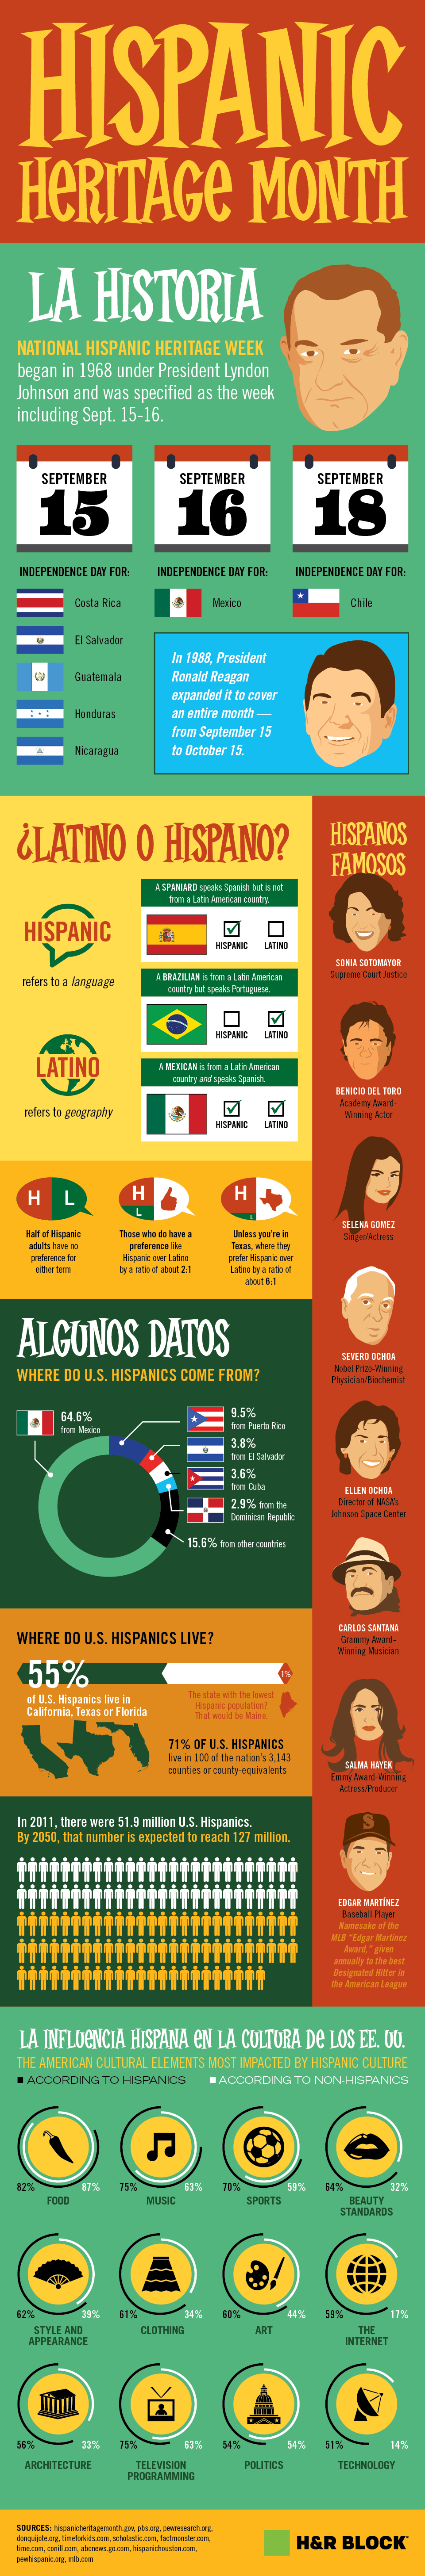 infographic about Hispanic Heritage month